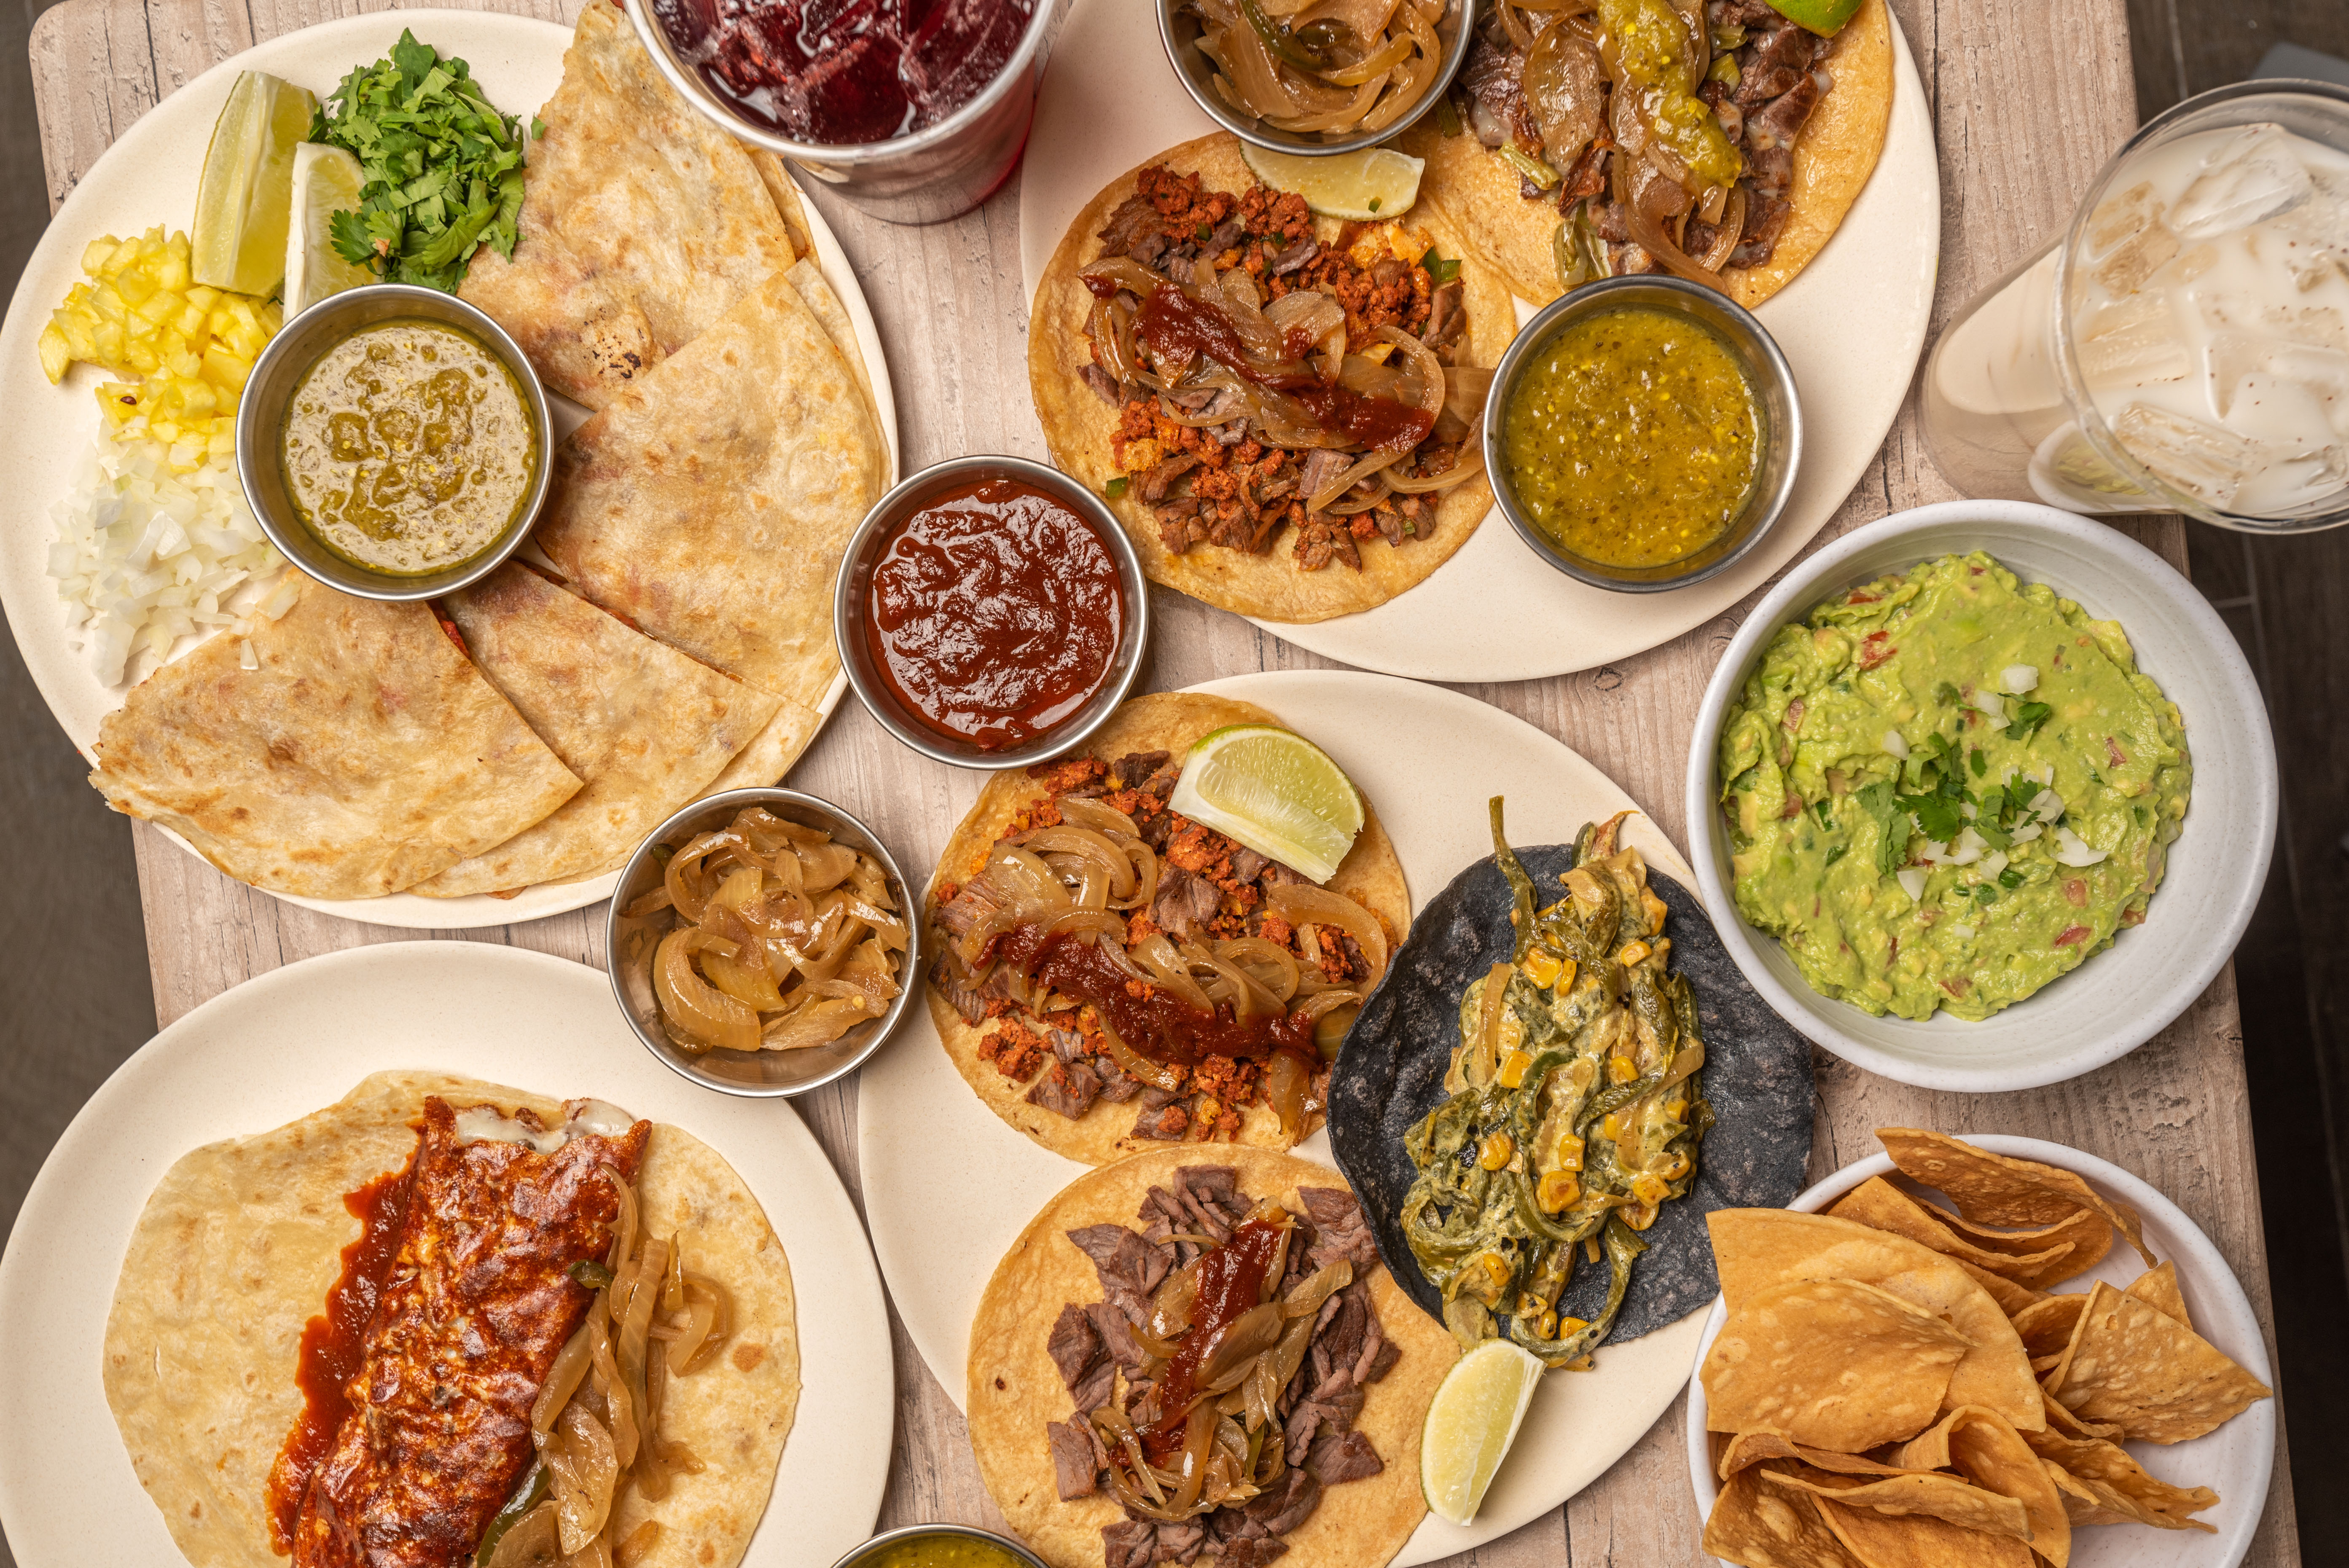 Tacos and other Mexican dishes laid out on a table.